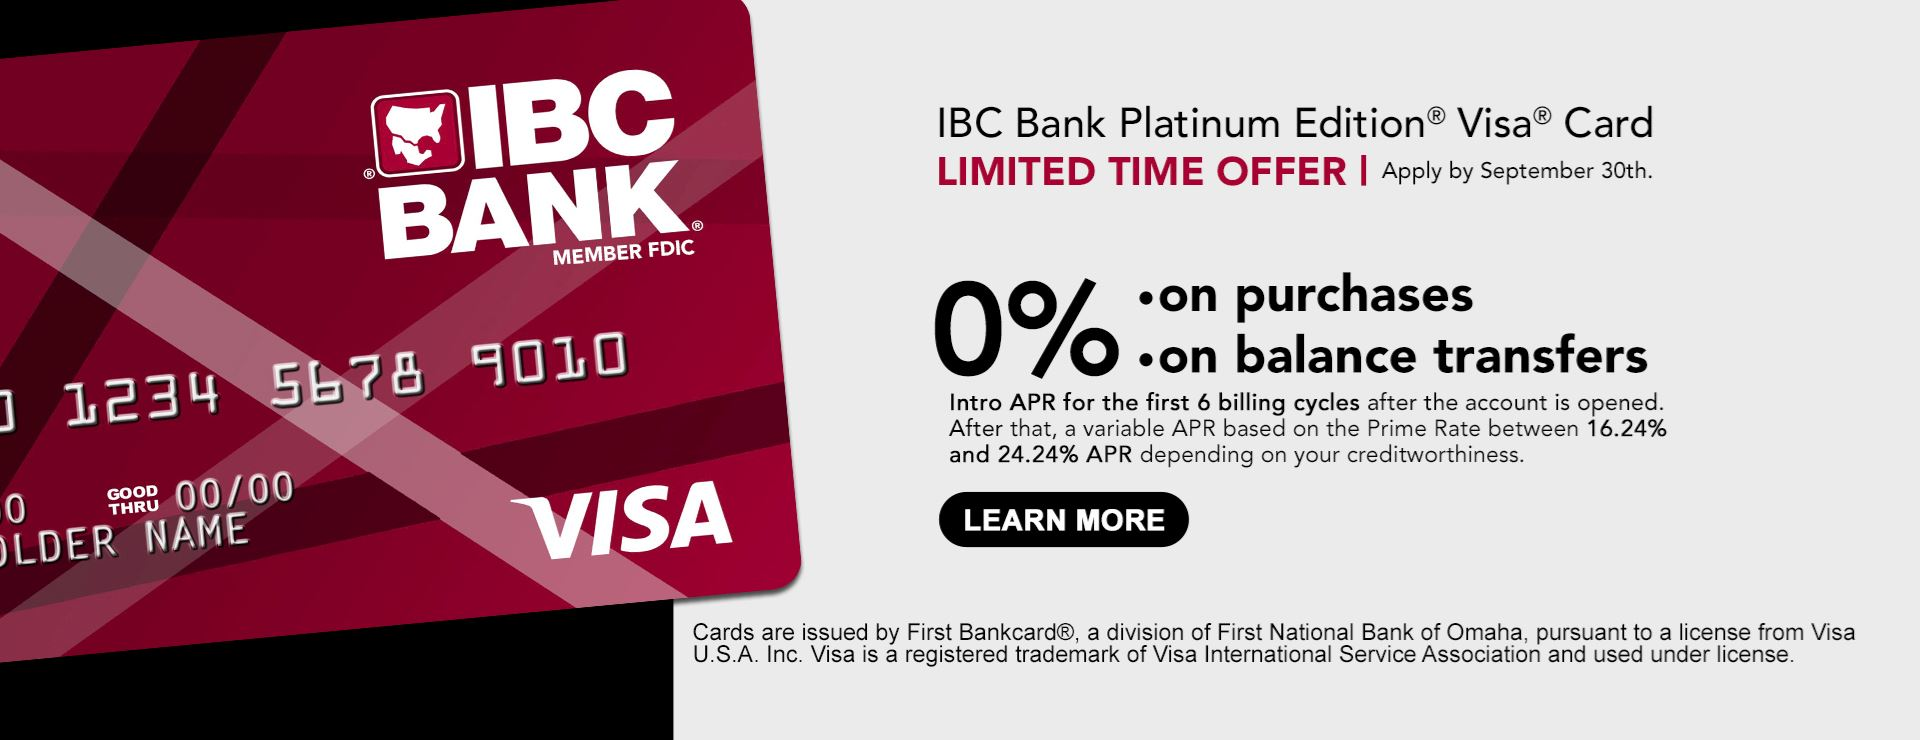 Will Ibc Bank Be Open Christmas Eve 2020 IBC Bank Home | Personal, Business, and International Banking